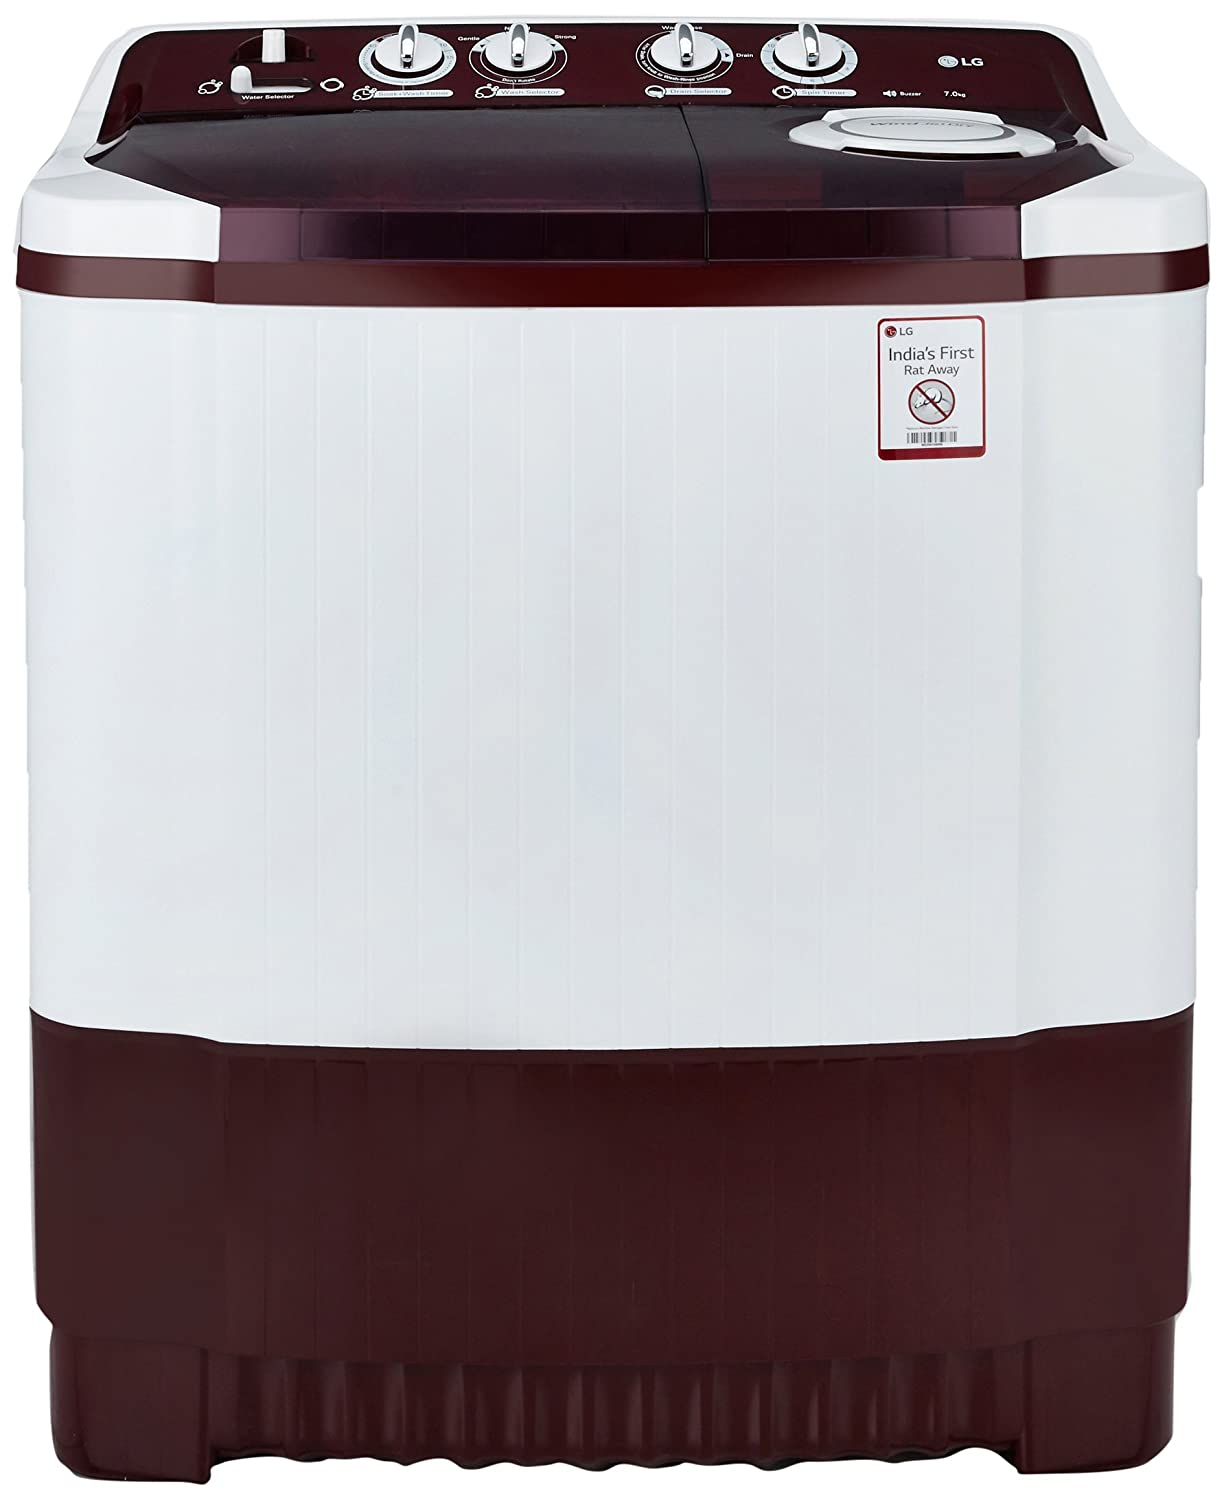 Best LG Washing Machine under 15000 in India 2018